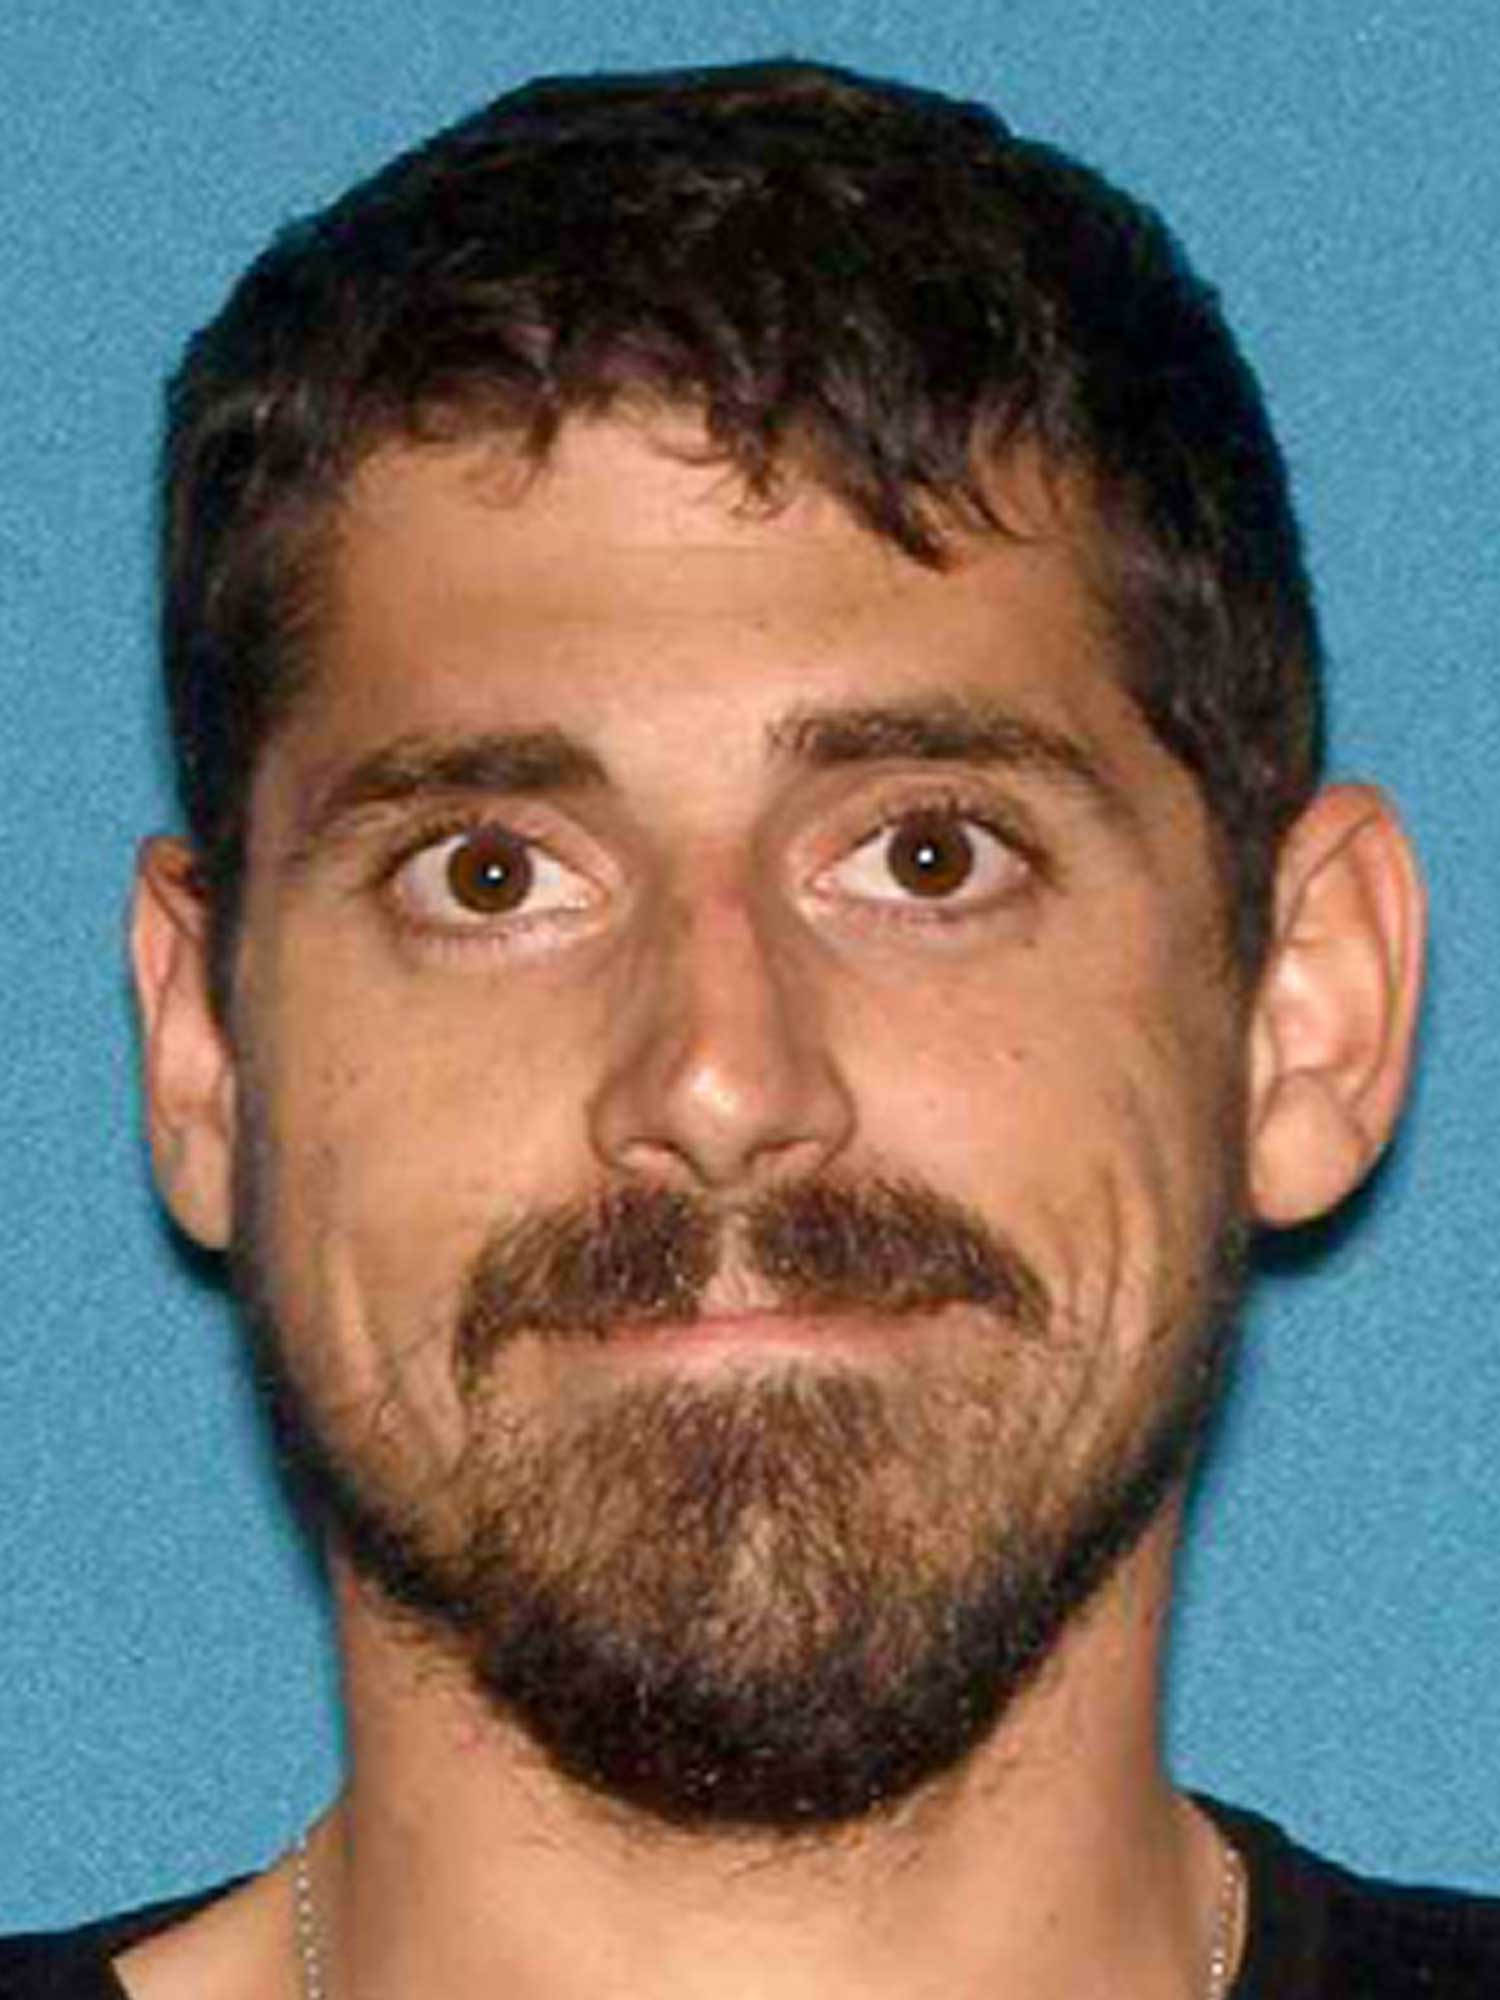 <div class='meta'><div class='origin-logo' data-origin='none'></div><span class='caption-text' data-credit='NJ Office of the Attorney General'>Steven Portnoy, 27, of Egg Harbor Township, N.J.</span></div>